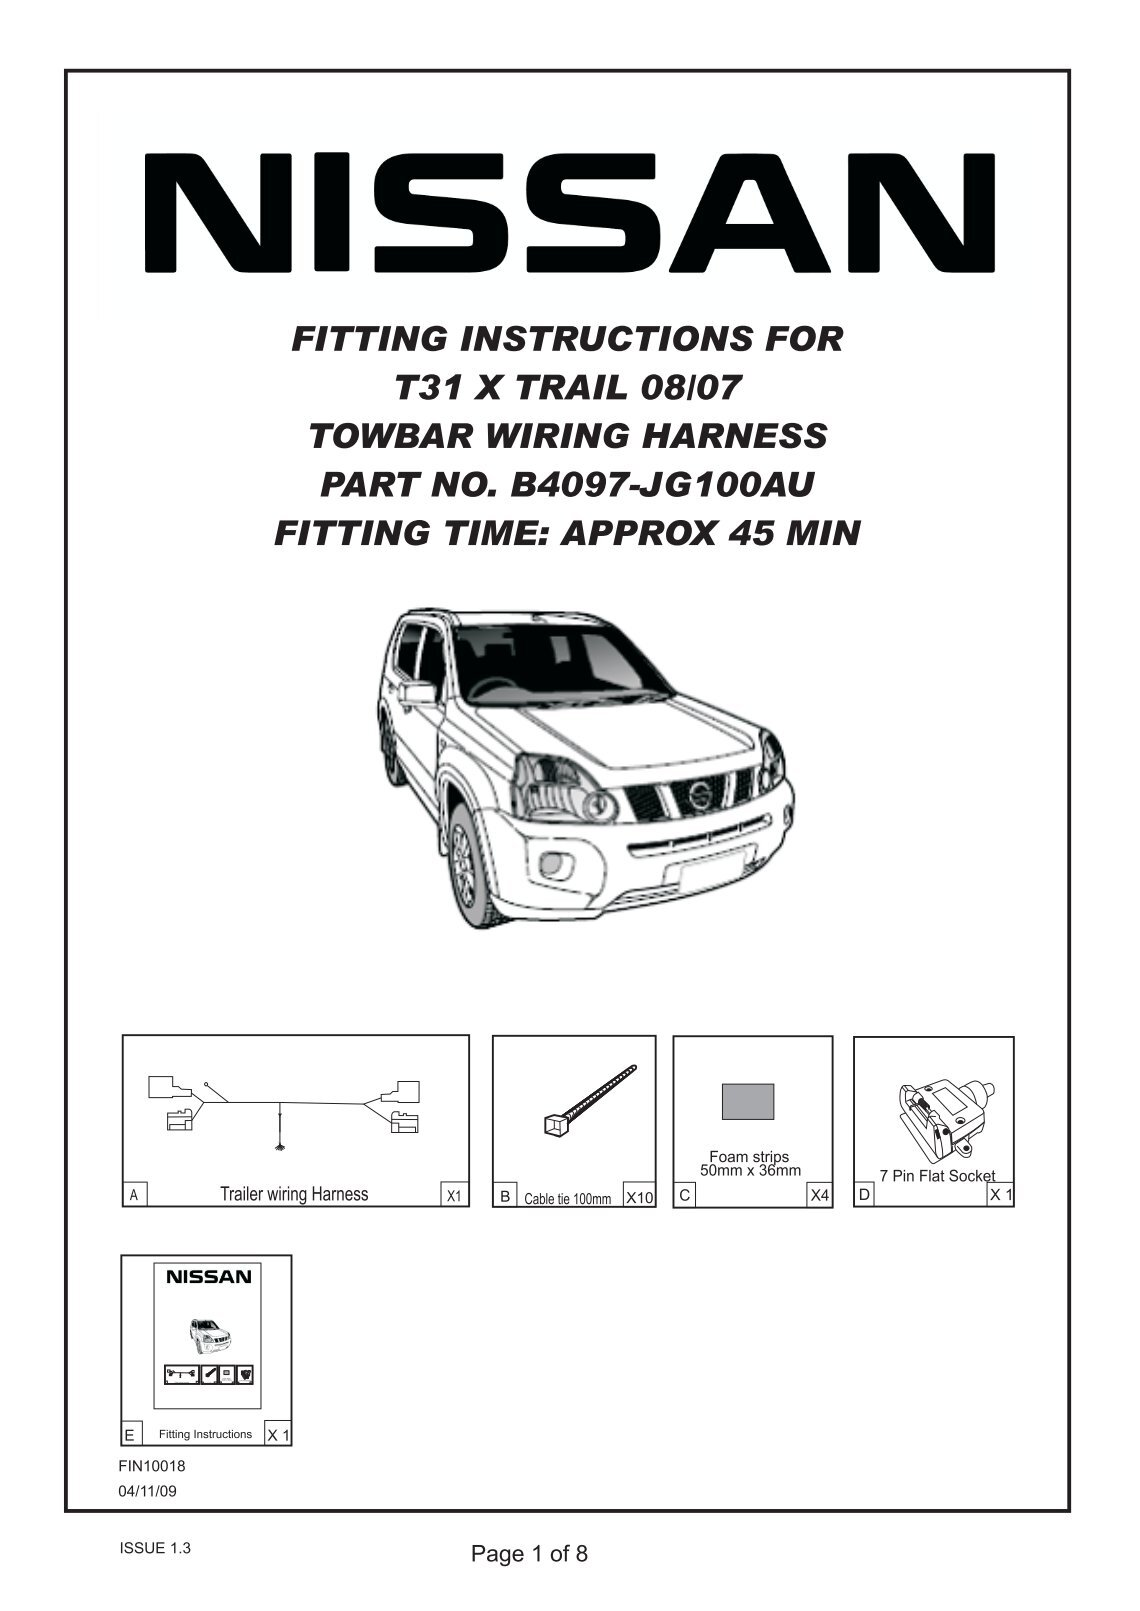 medium resolution of 2014 nissan altima s ke diagram nissan auto parts 2007 nissan altima wiring diagram 2001 nissan